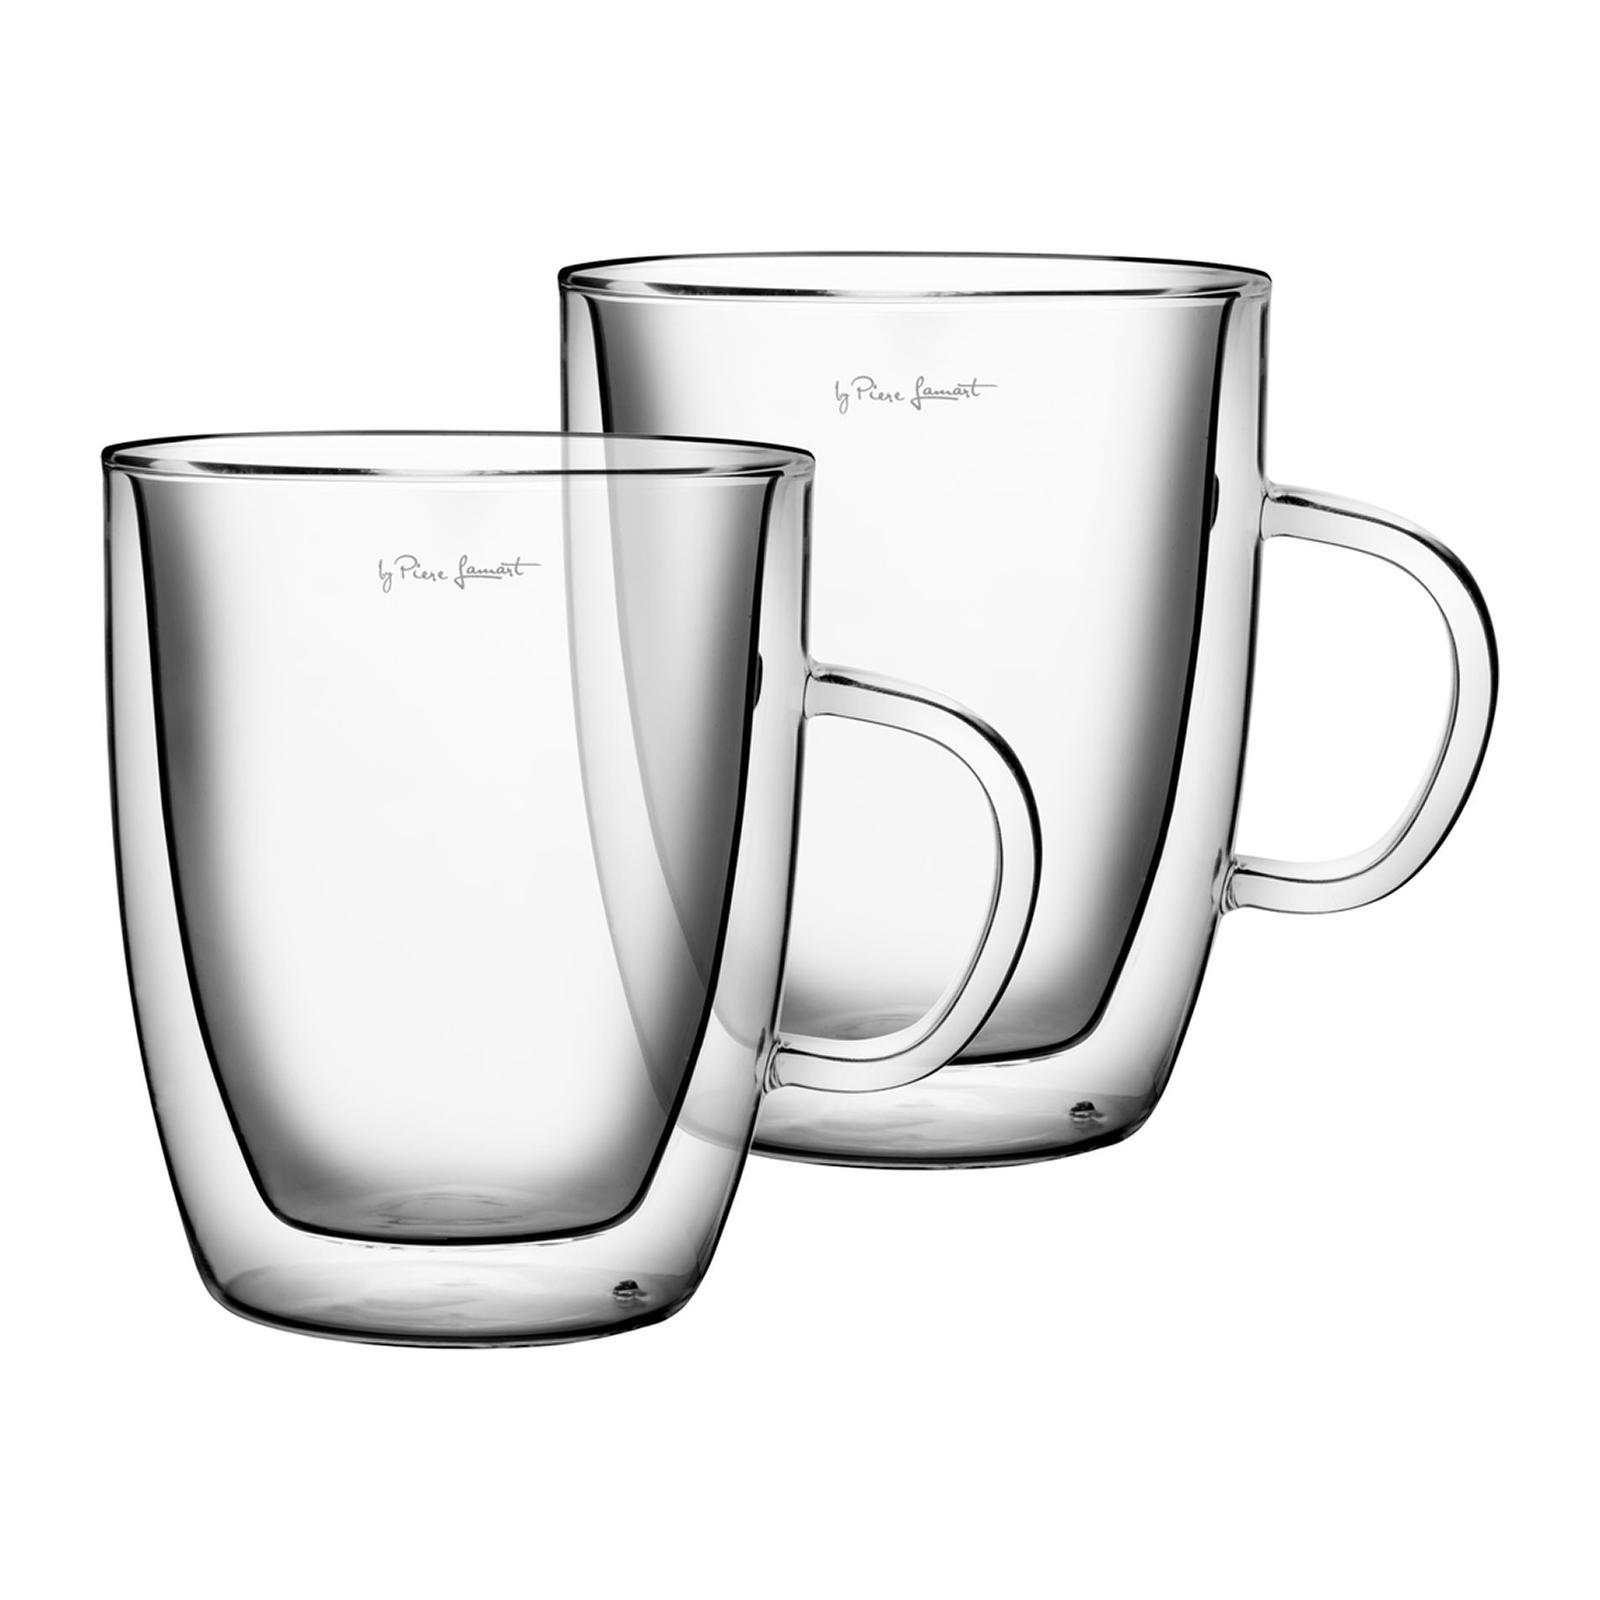 Lamart Tea Glass Set - 2 PCS